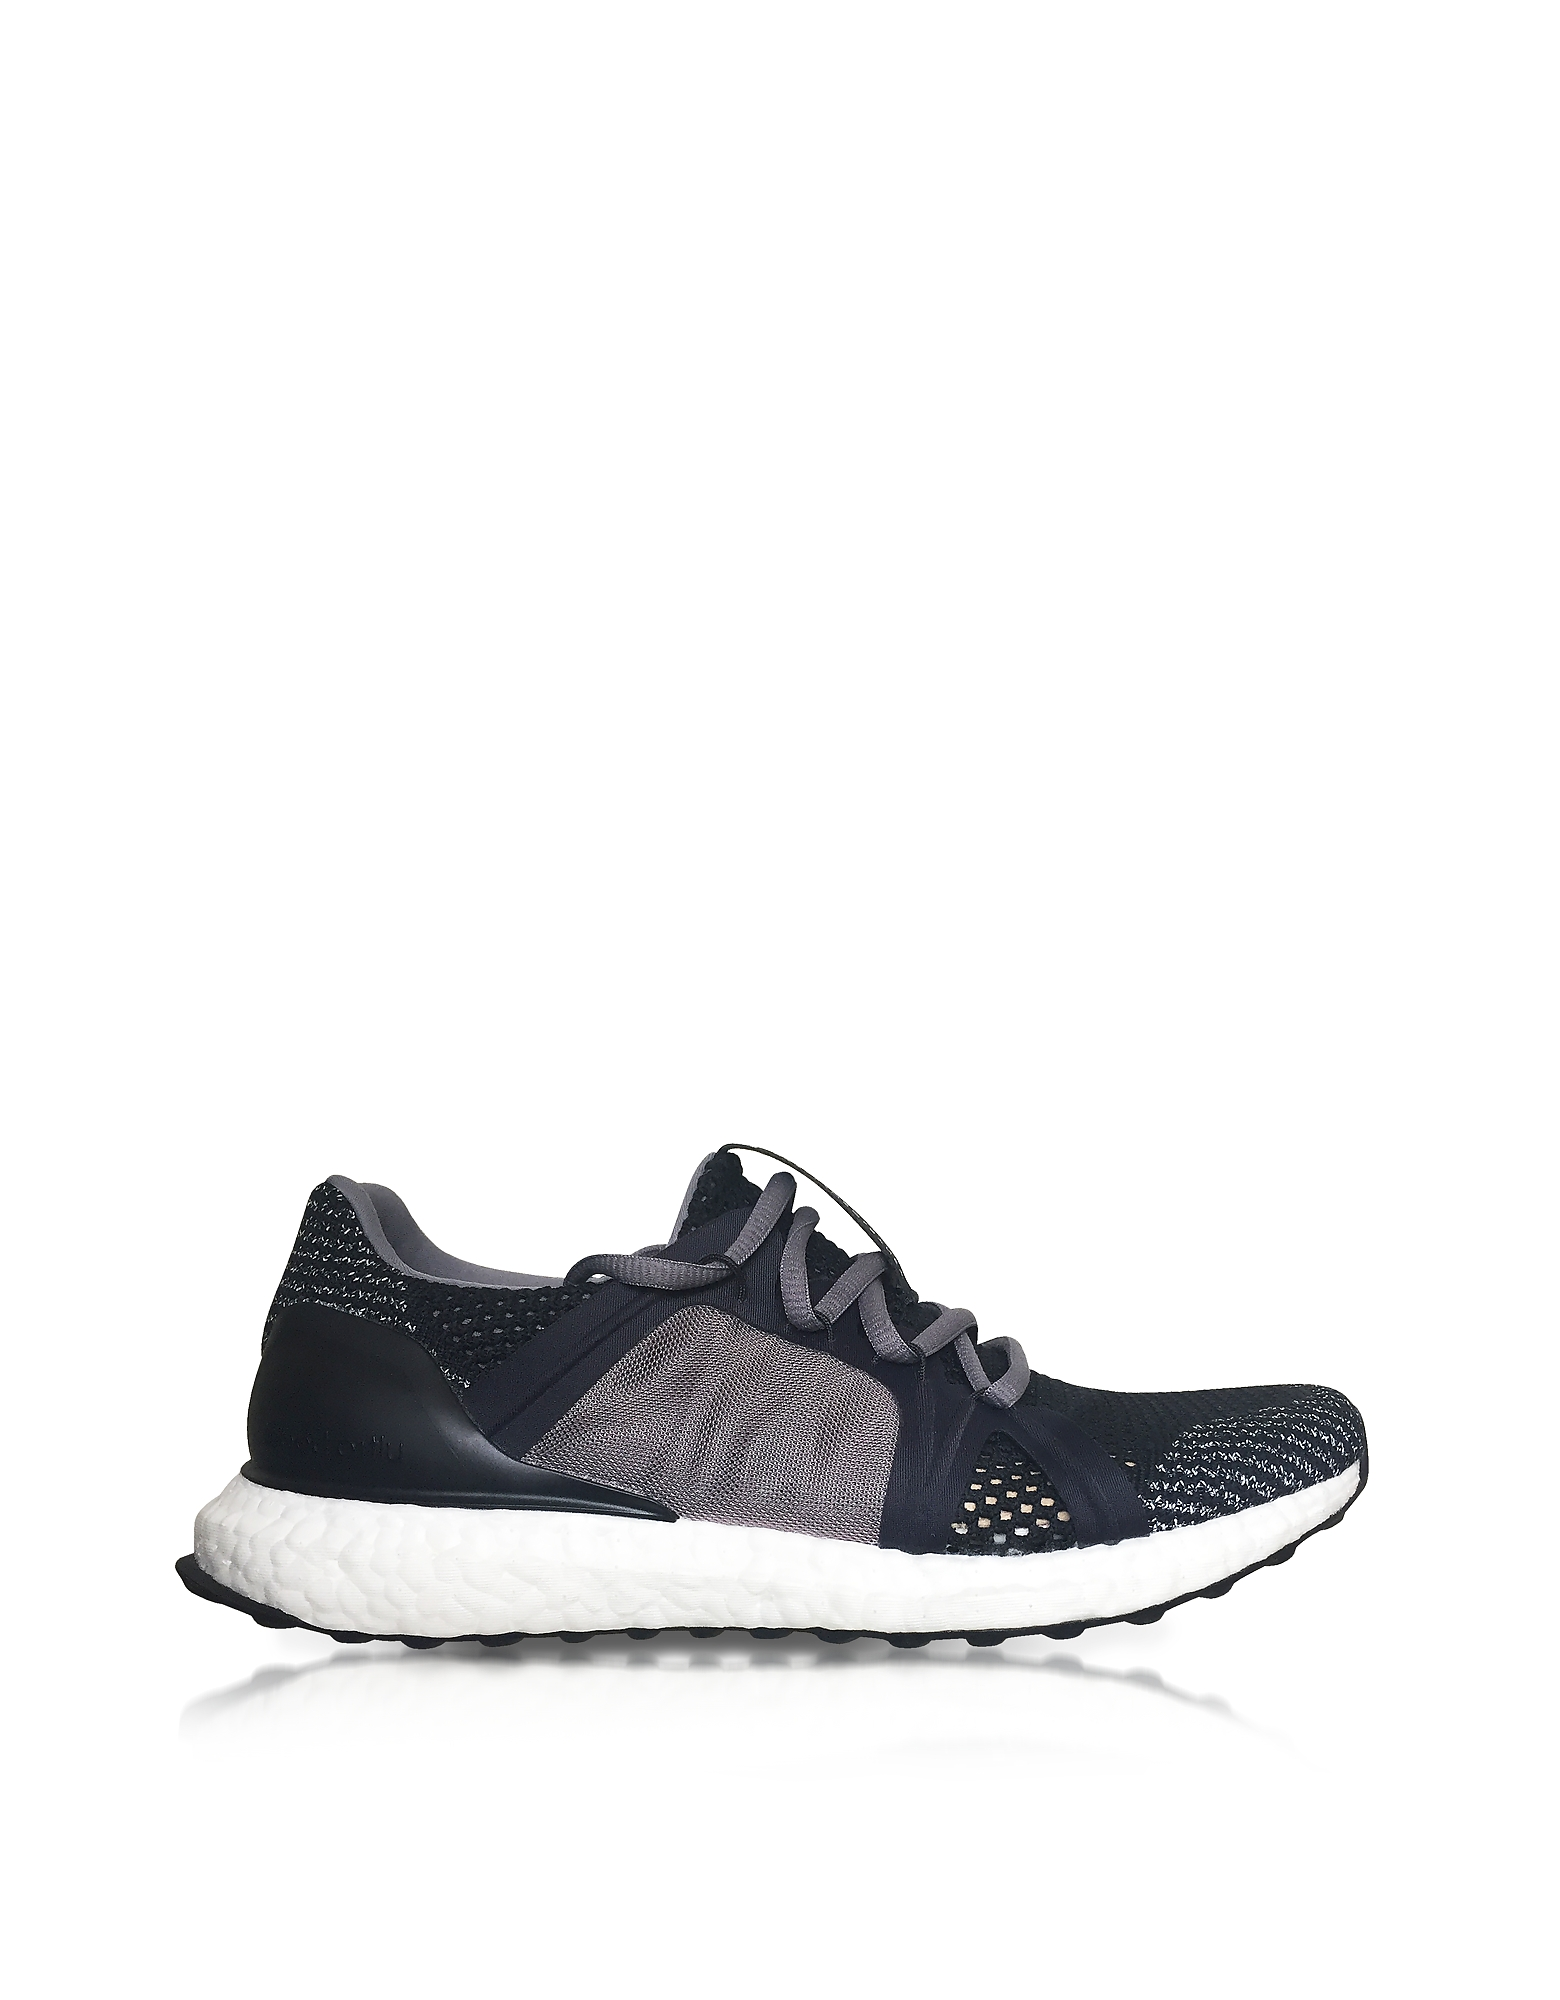 UltraBOOST X Black and Smoked Pink Women's Sneakers